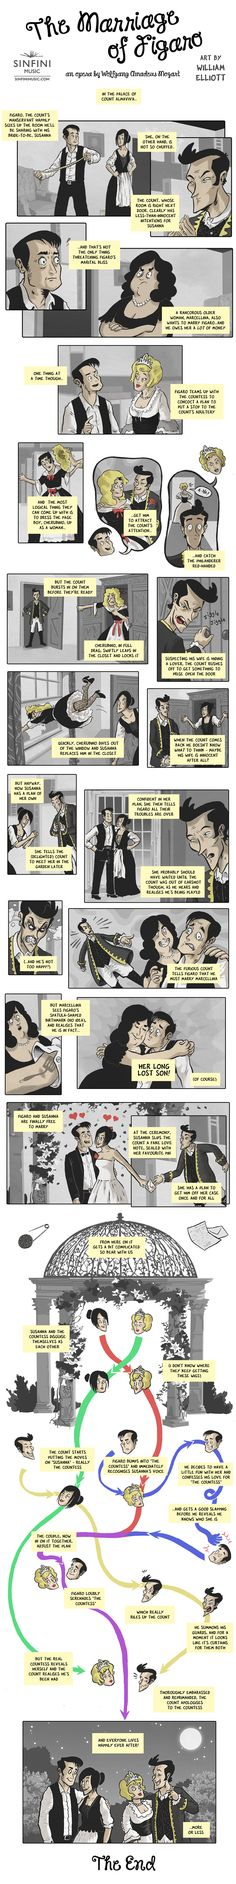 The Marriage of Figaro: An Opera by Wolfgang Amadeus Mozart. Opera Comic Strip Art by William Elliott